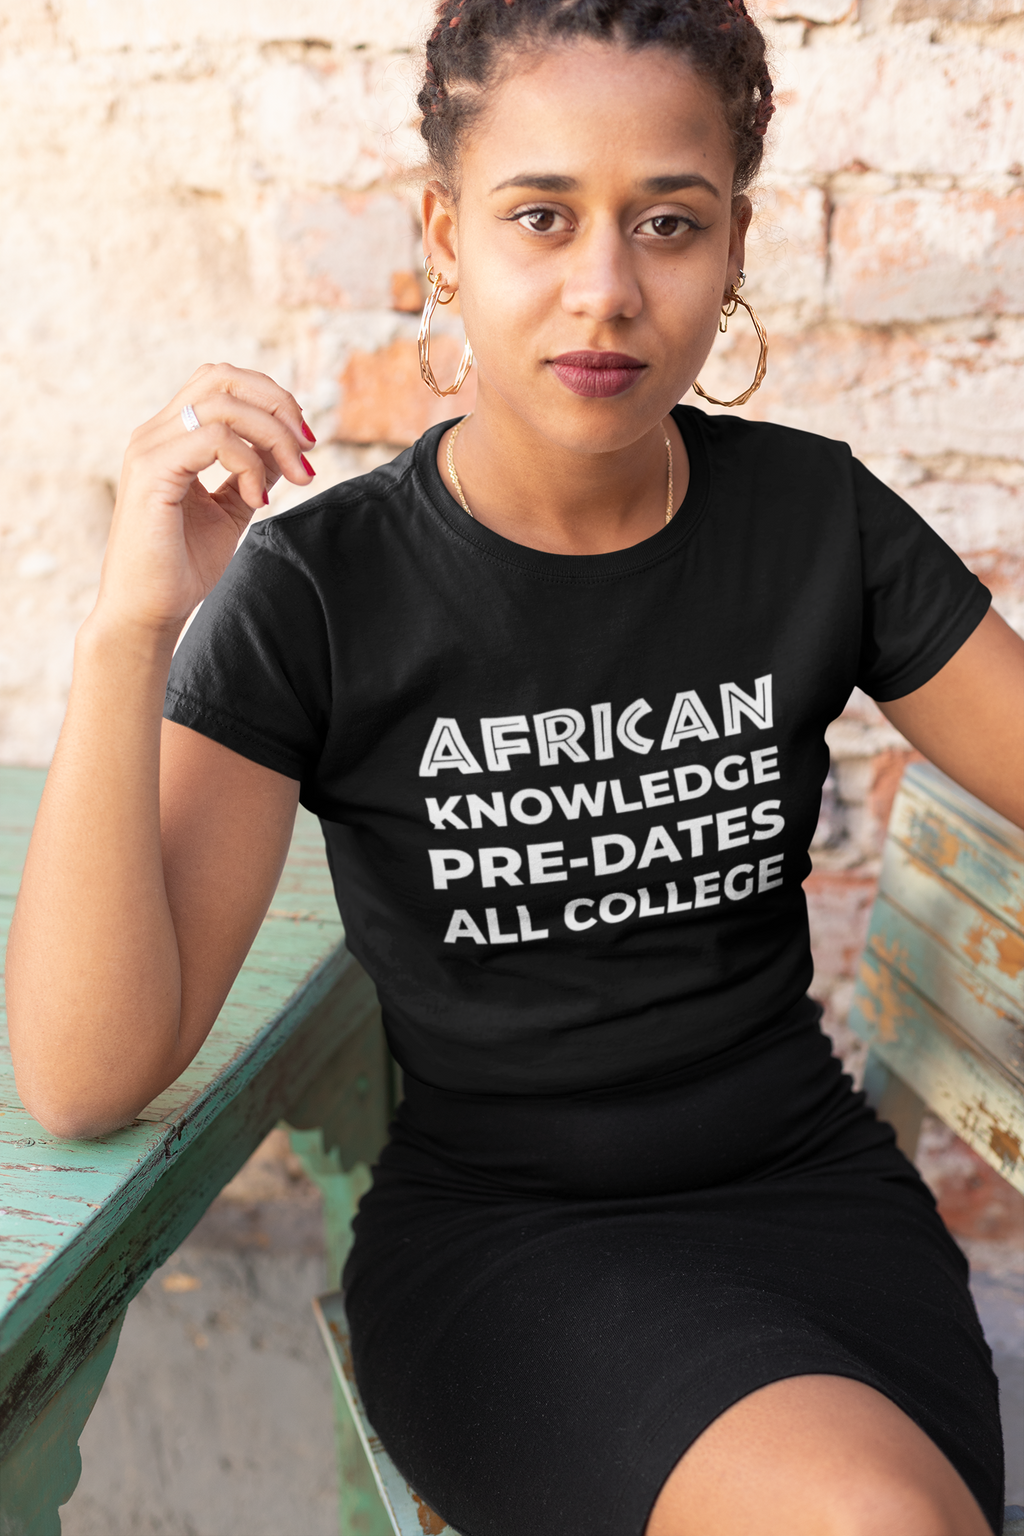 AFRICAN KNOWLEDGE WOMENS CAP T